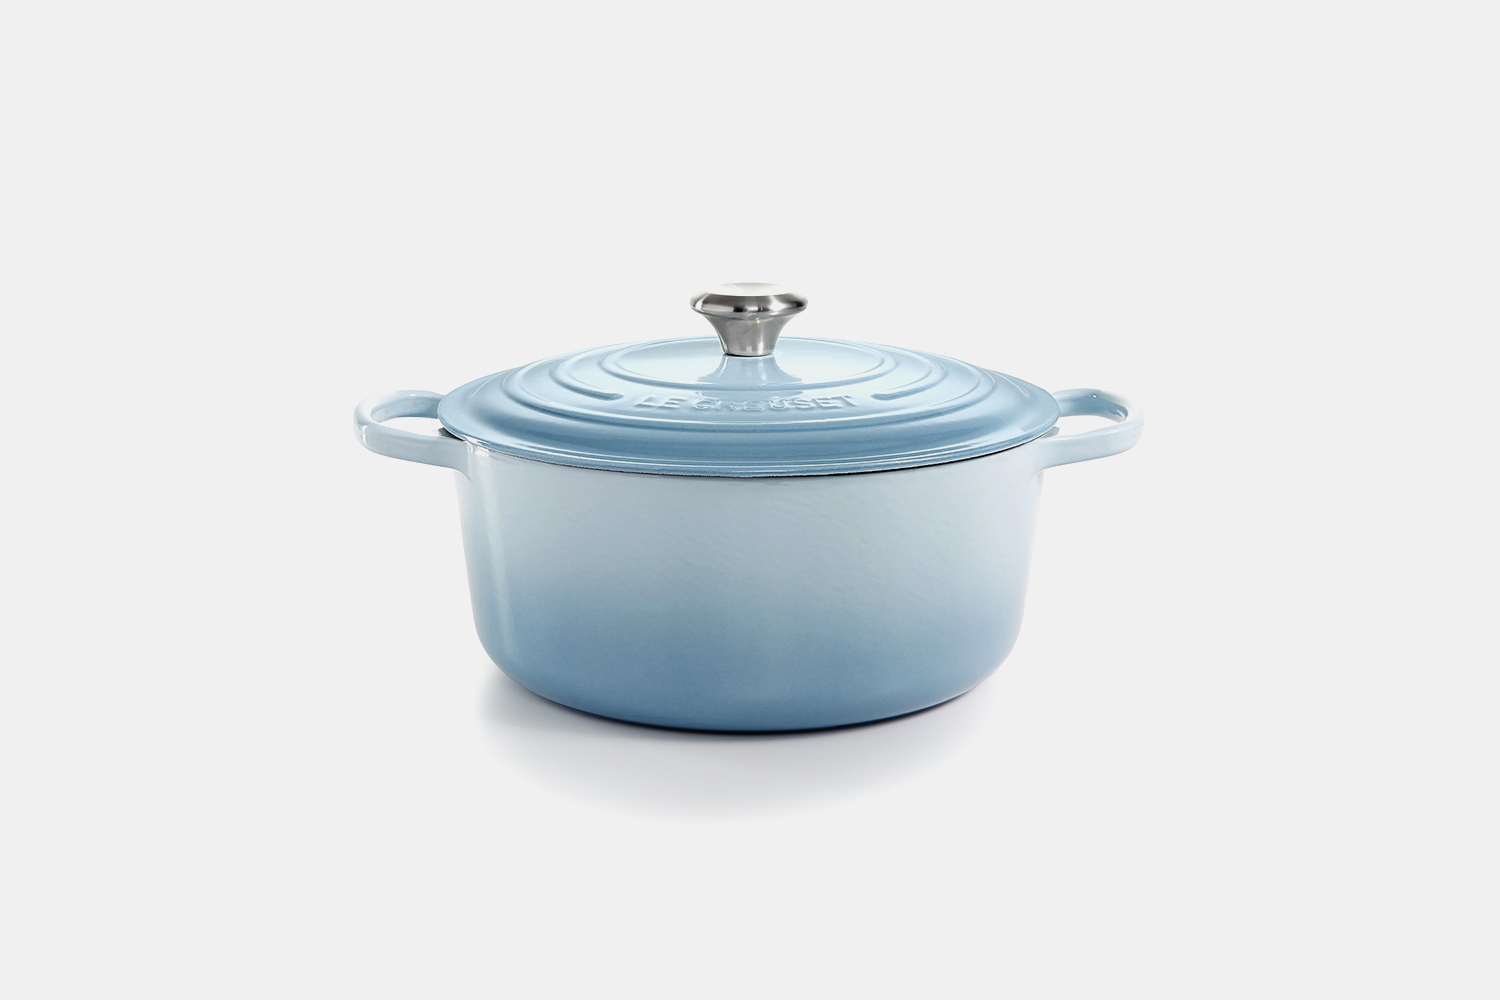 Deal: Get 30% Off This Le Creuset Dutch Oven